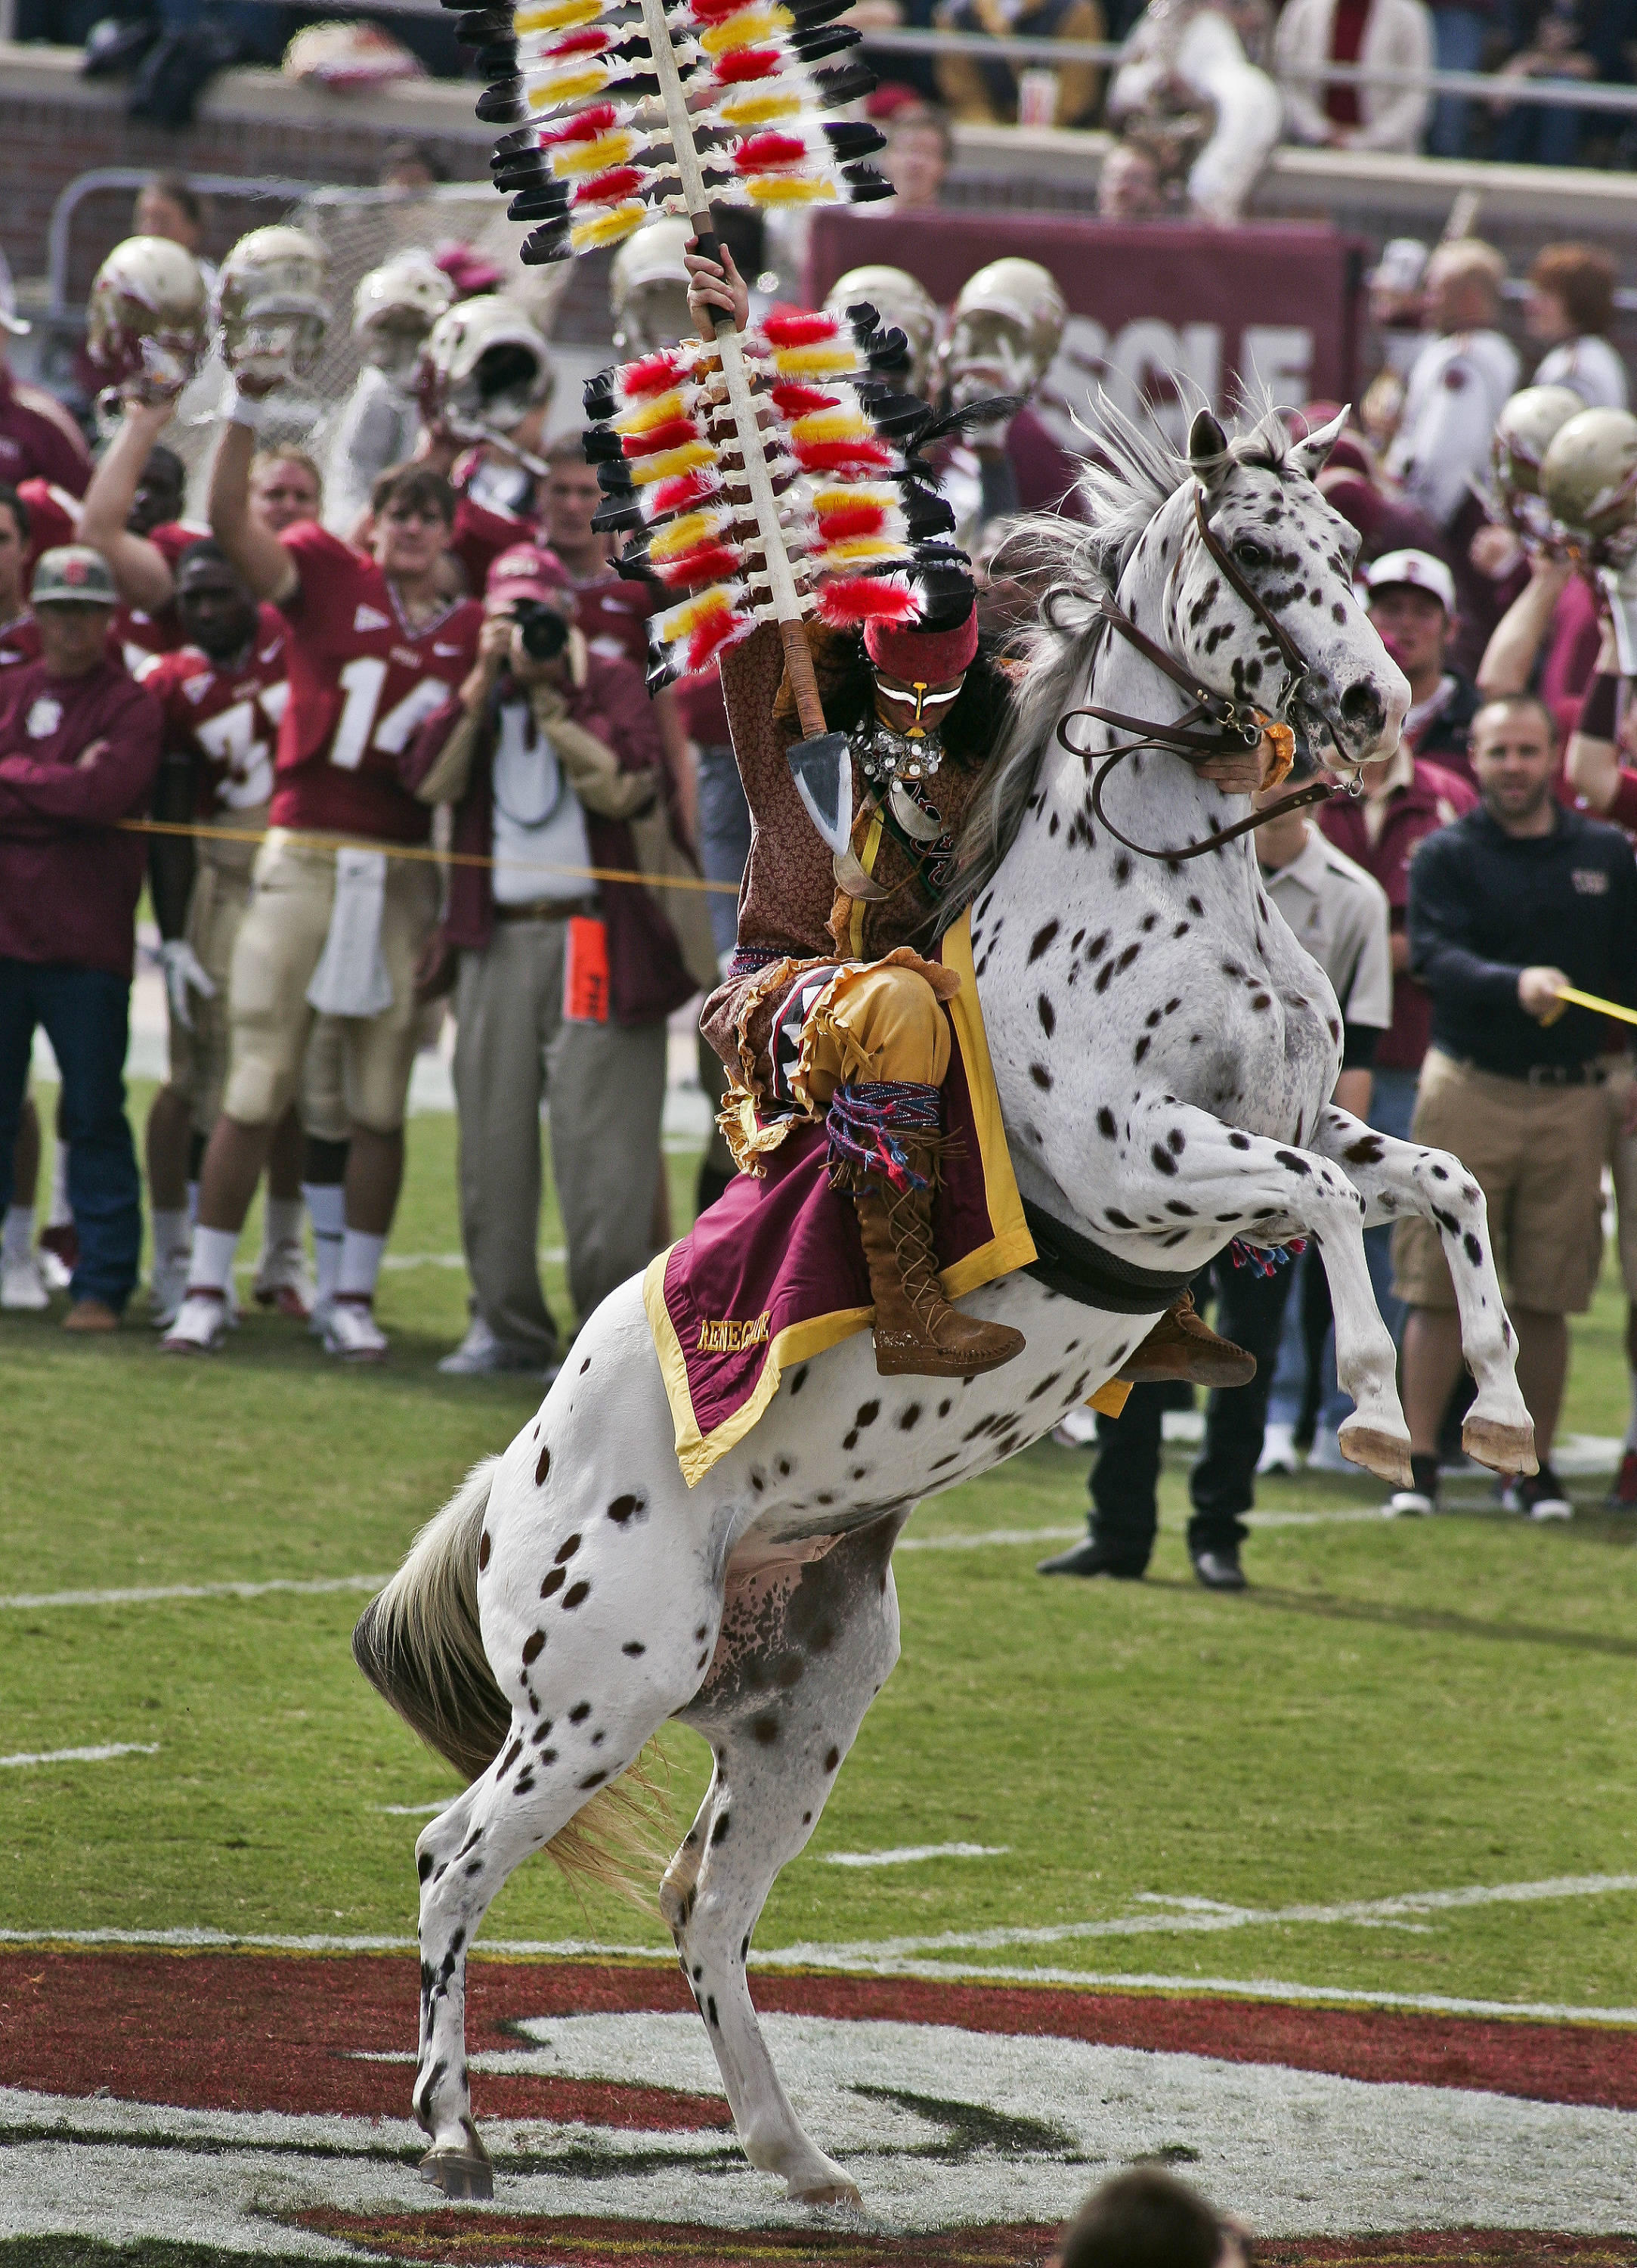 Florida State mascot Osceola, riding Renegade, plants his spear at the 50-yard line before a game against North Carolina State. (AP Photo/Phil Sears)